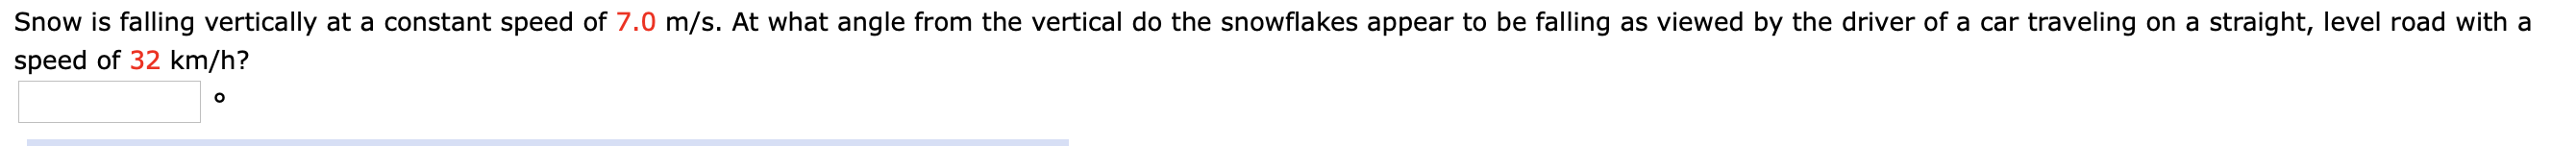 Snow is falling vertically at a constant speed of 7.0 m/s. At what angle from the vertical do the snowflakes appear to be falling as viewed by the driver of a car traveling on a straight, level road with a speed of 32 km/h?